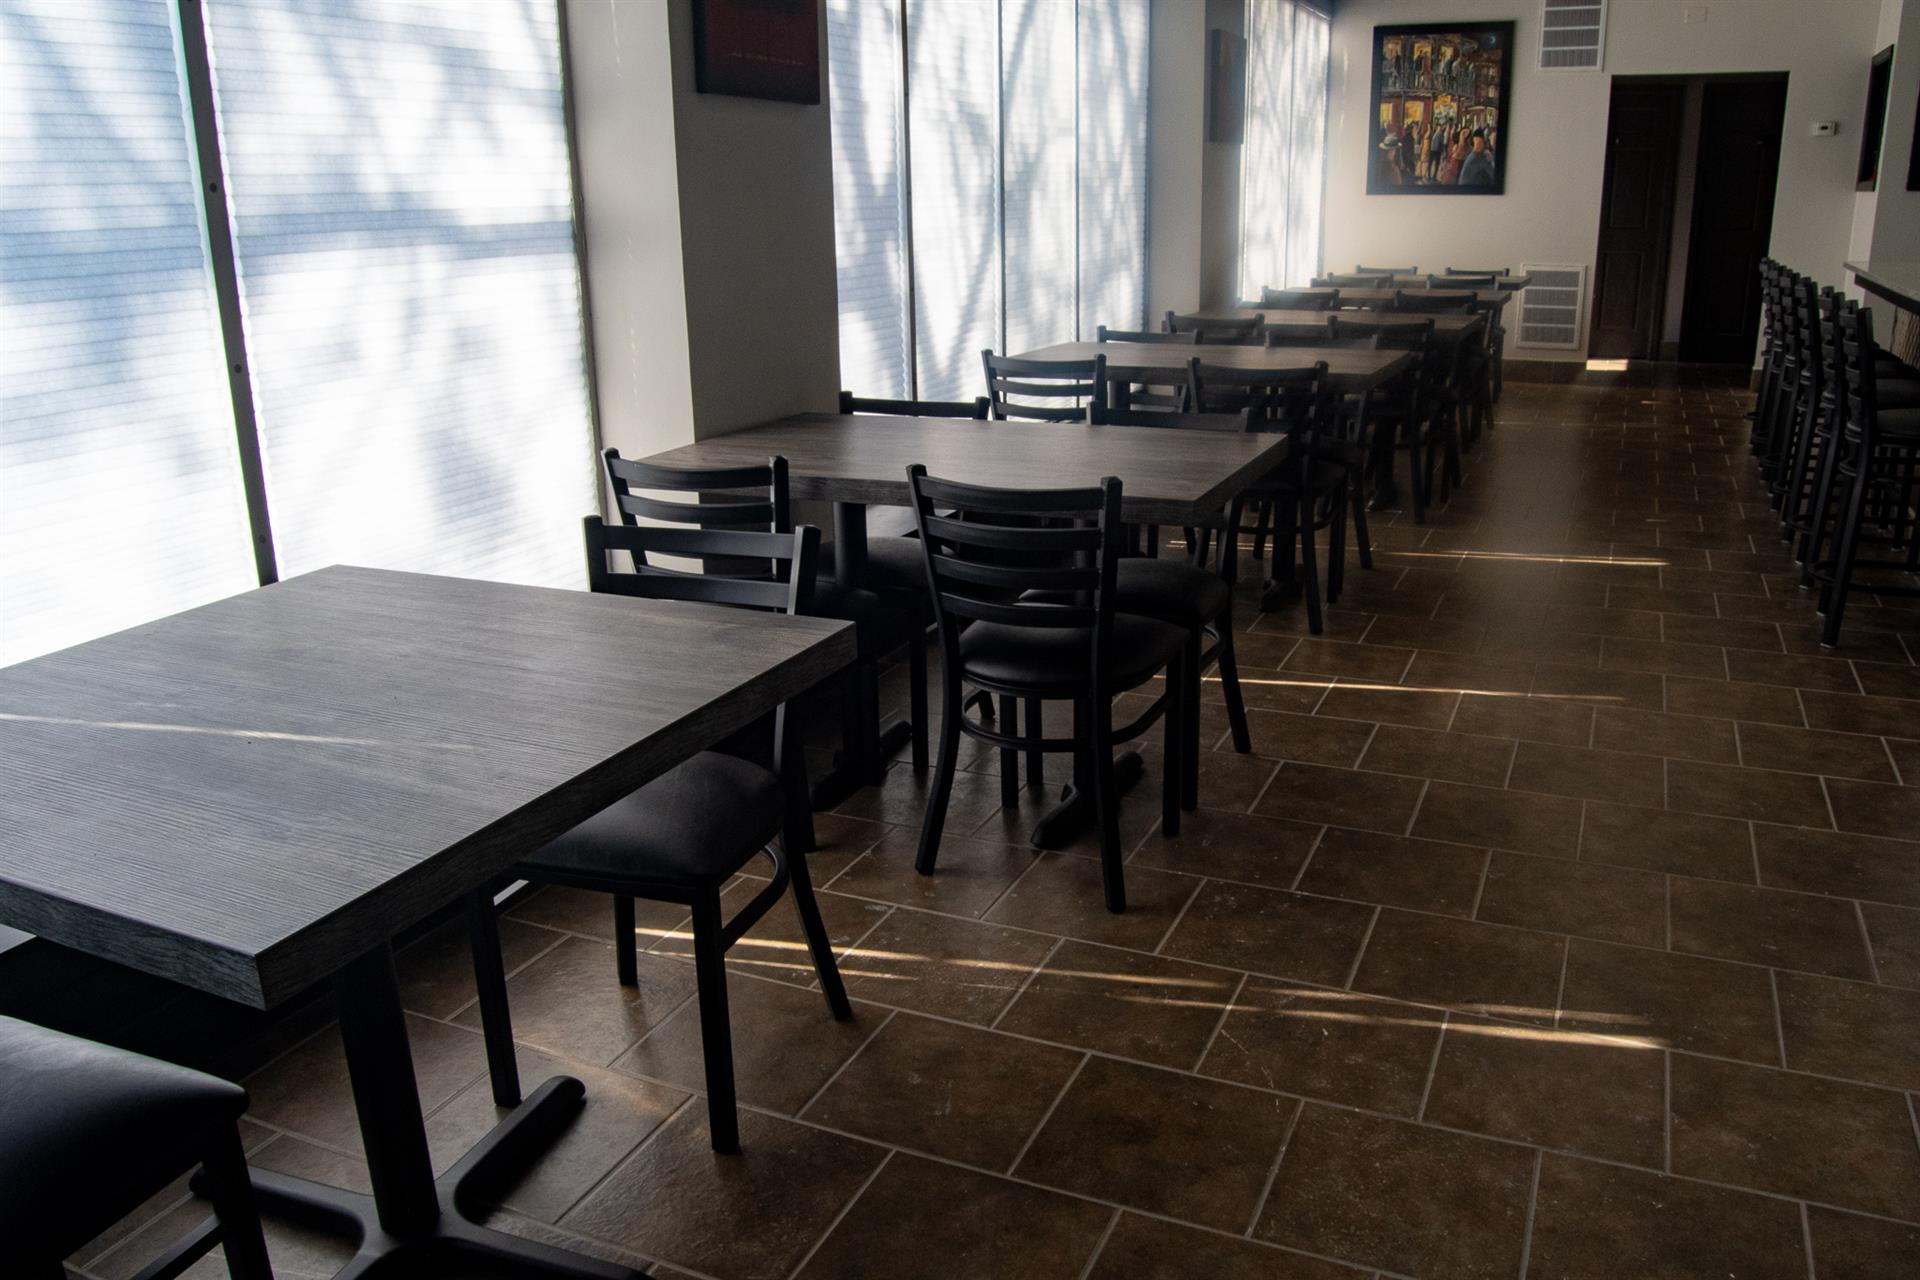 indoor dining at grinnell cafe